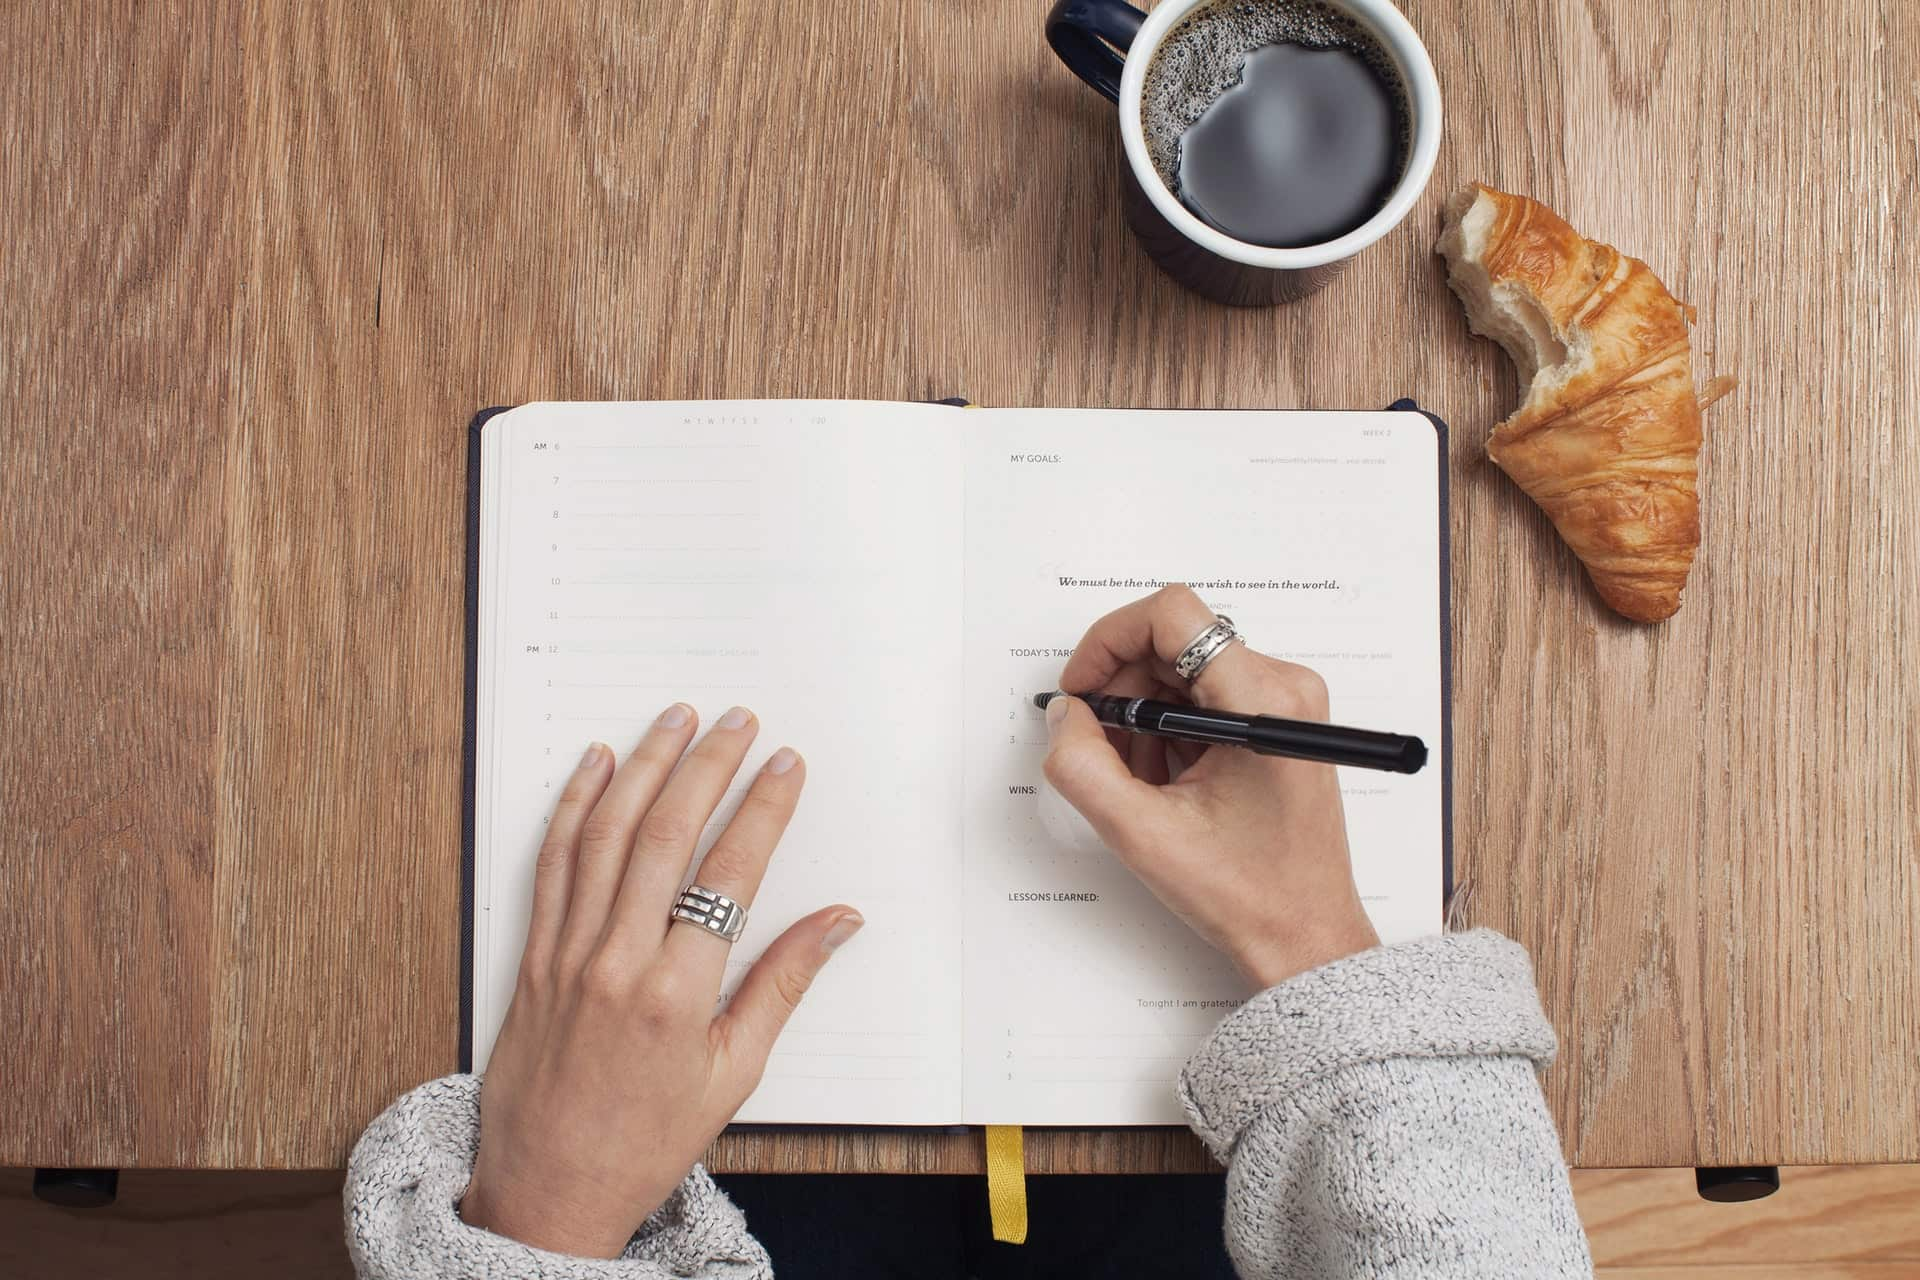 How to recover while signed off work for mental health